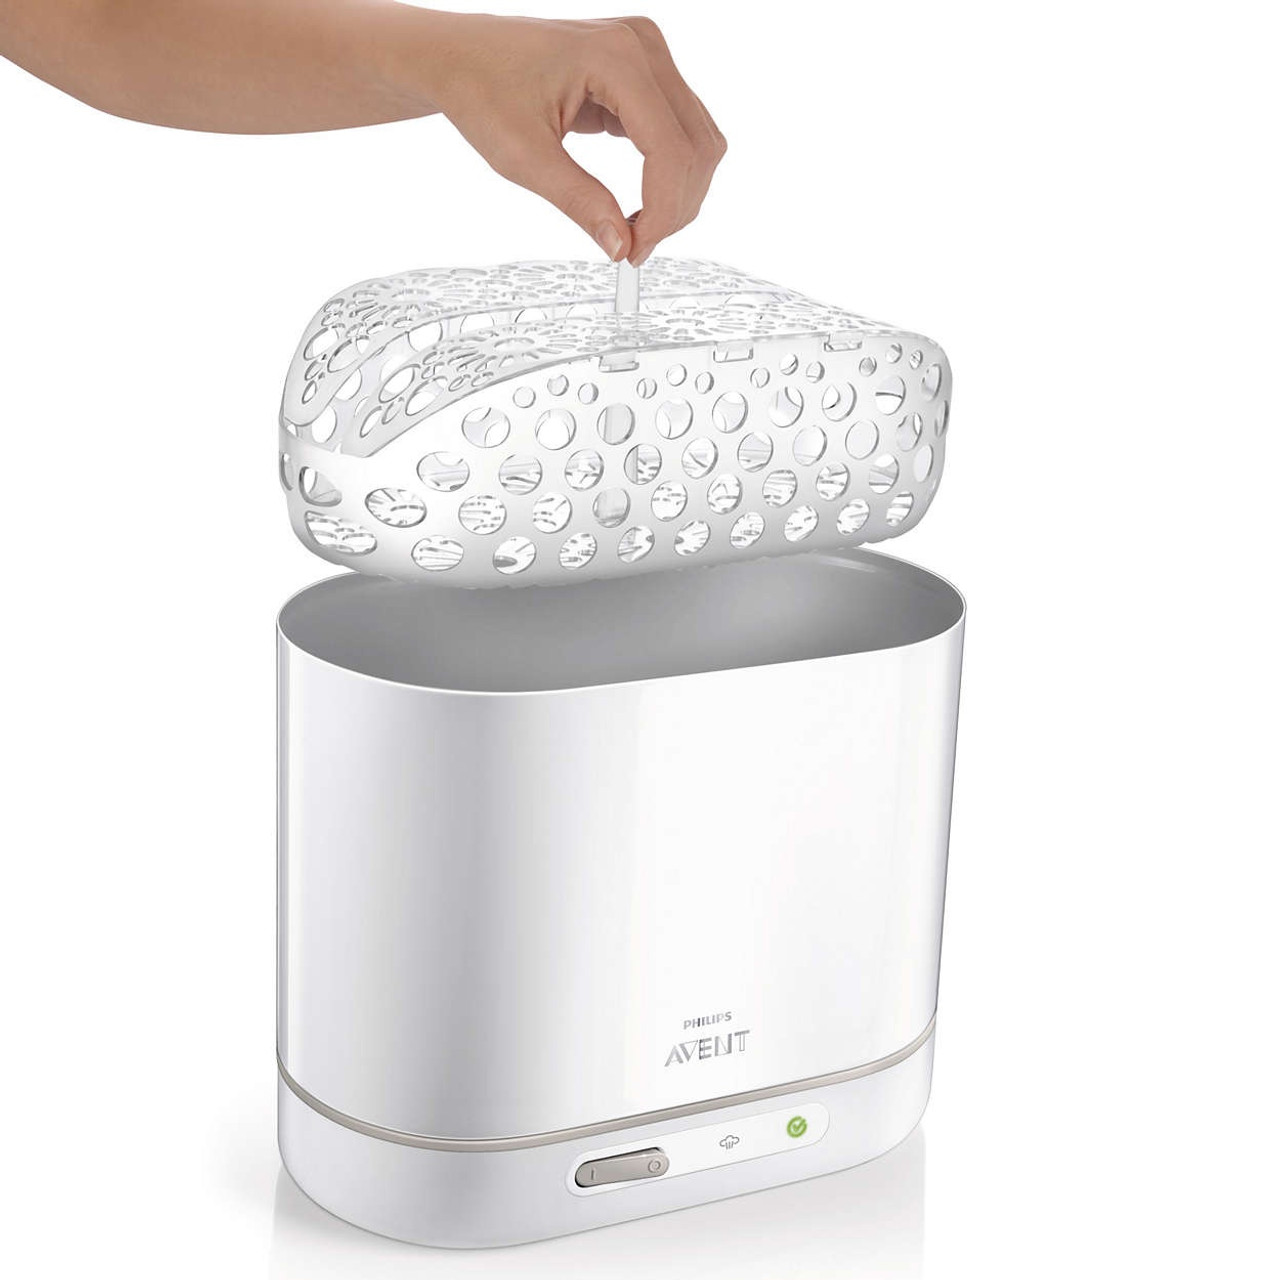 Avent 4 in 1 Electric Steam Steriliser at Baby Barn Discounts Avent sterilizer's unique modular design enables you to fit the bottles and accessories flexibly, and organize them easily.